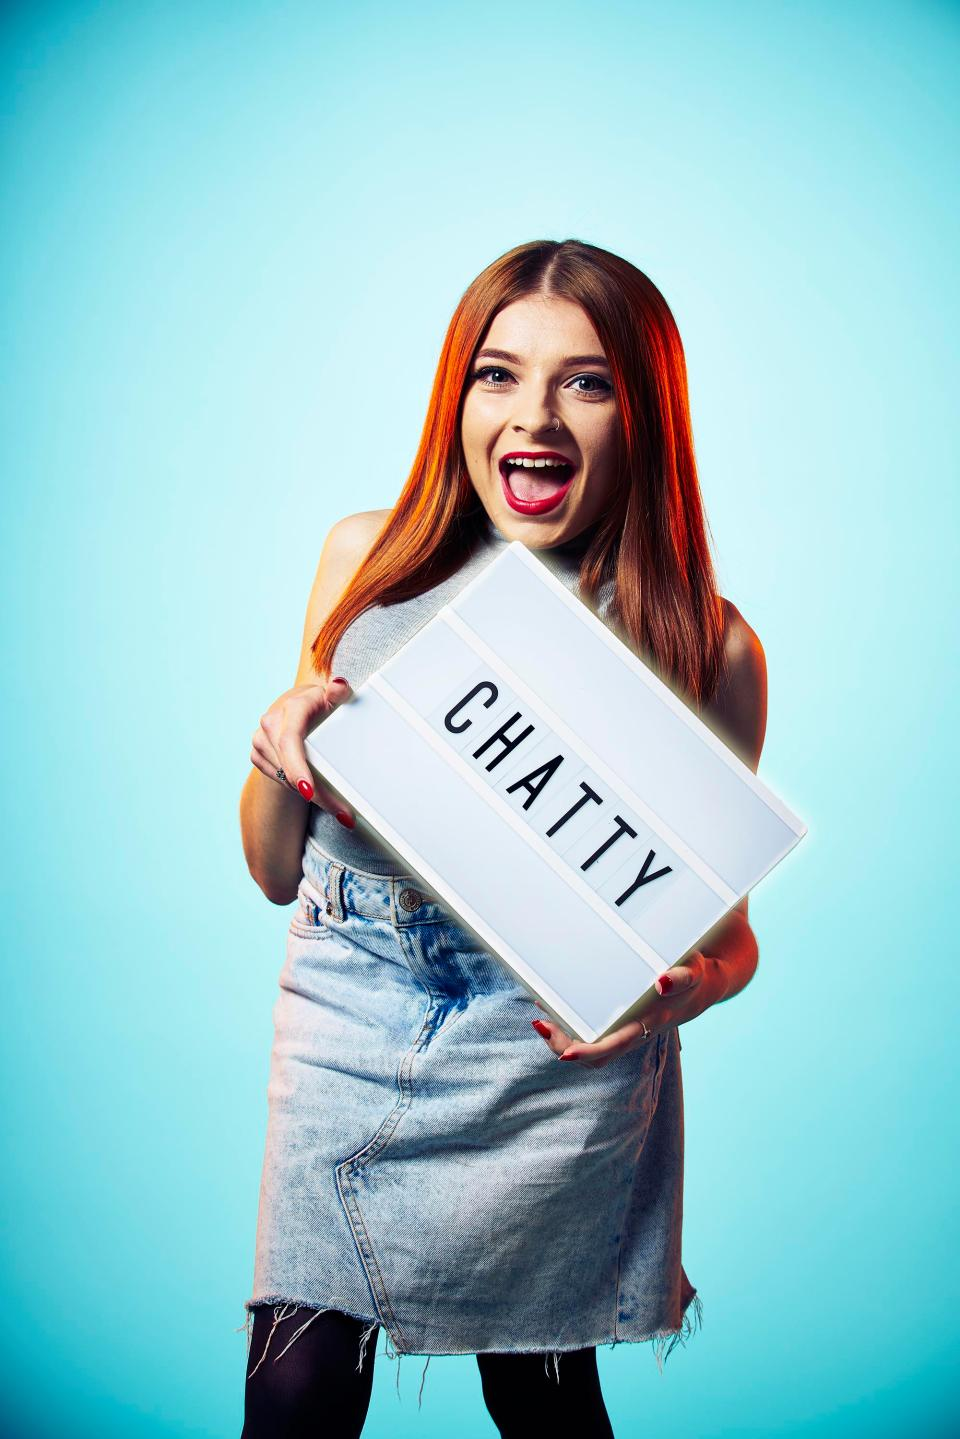 Becky Dann of The Undateables stands holiding a sign with the word 'Chatty'